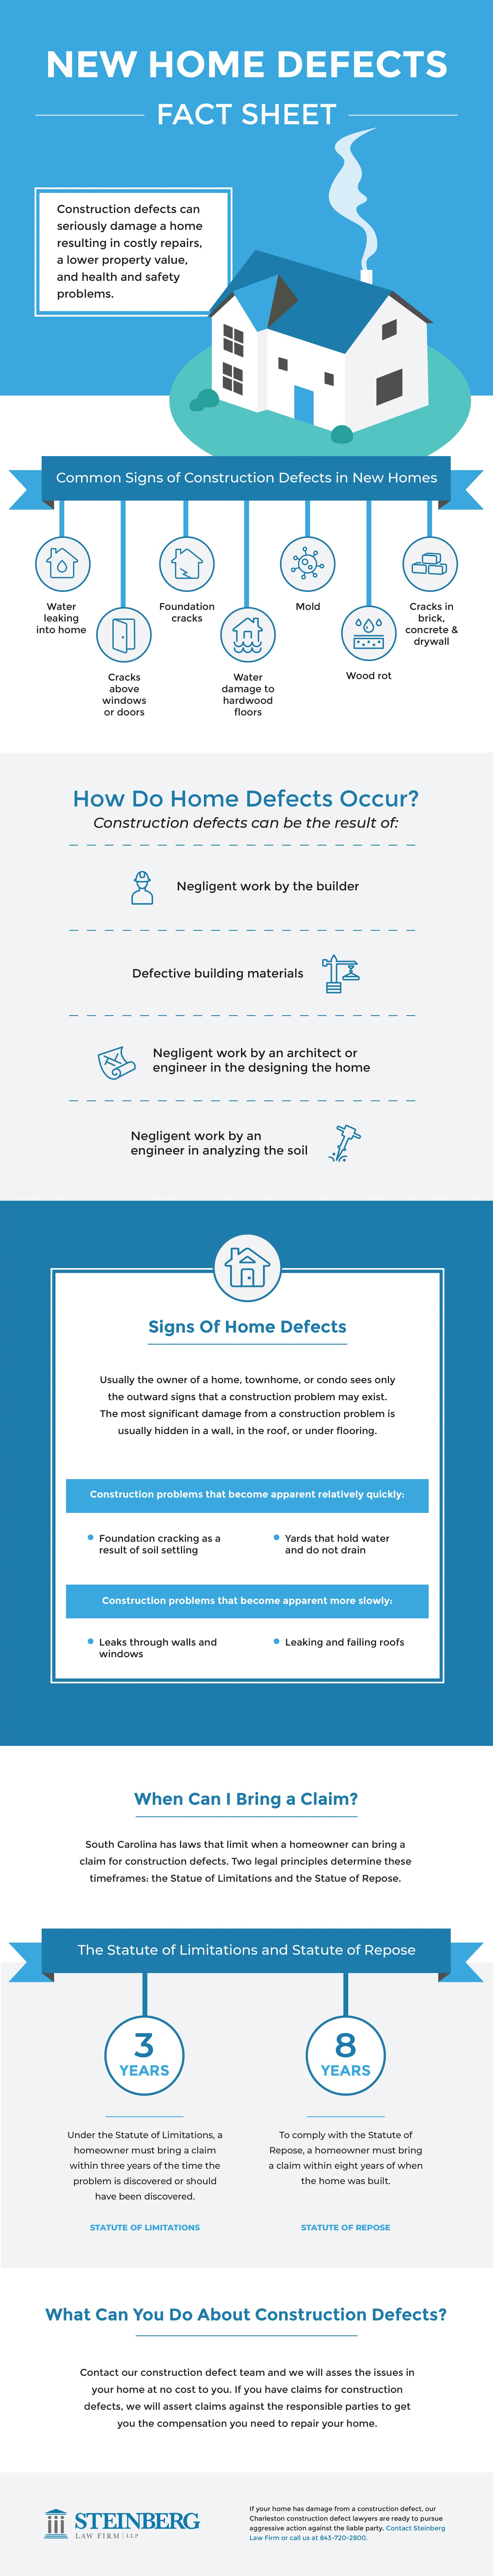 New Home Defects